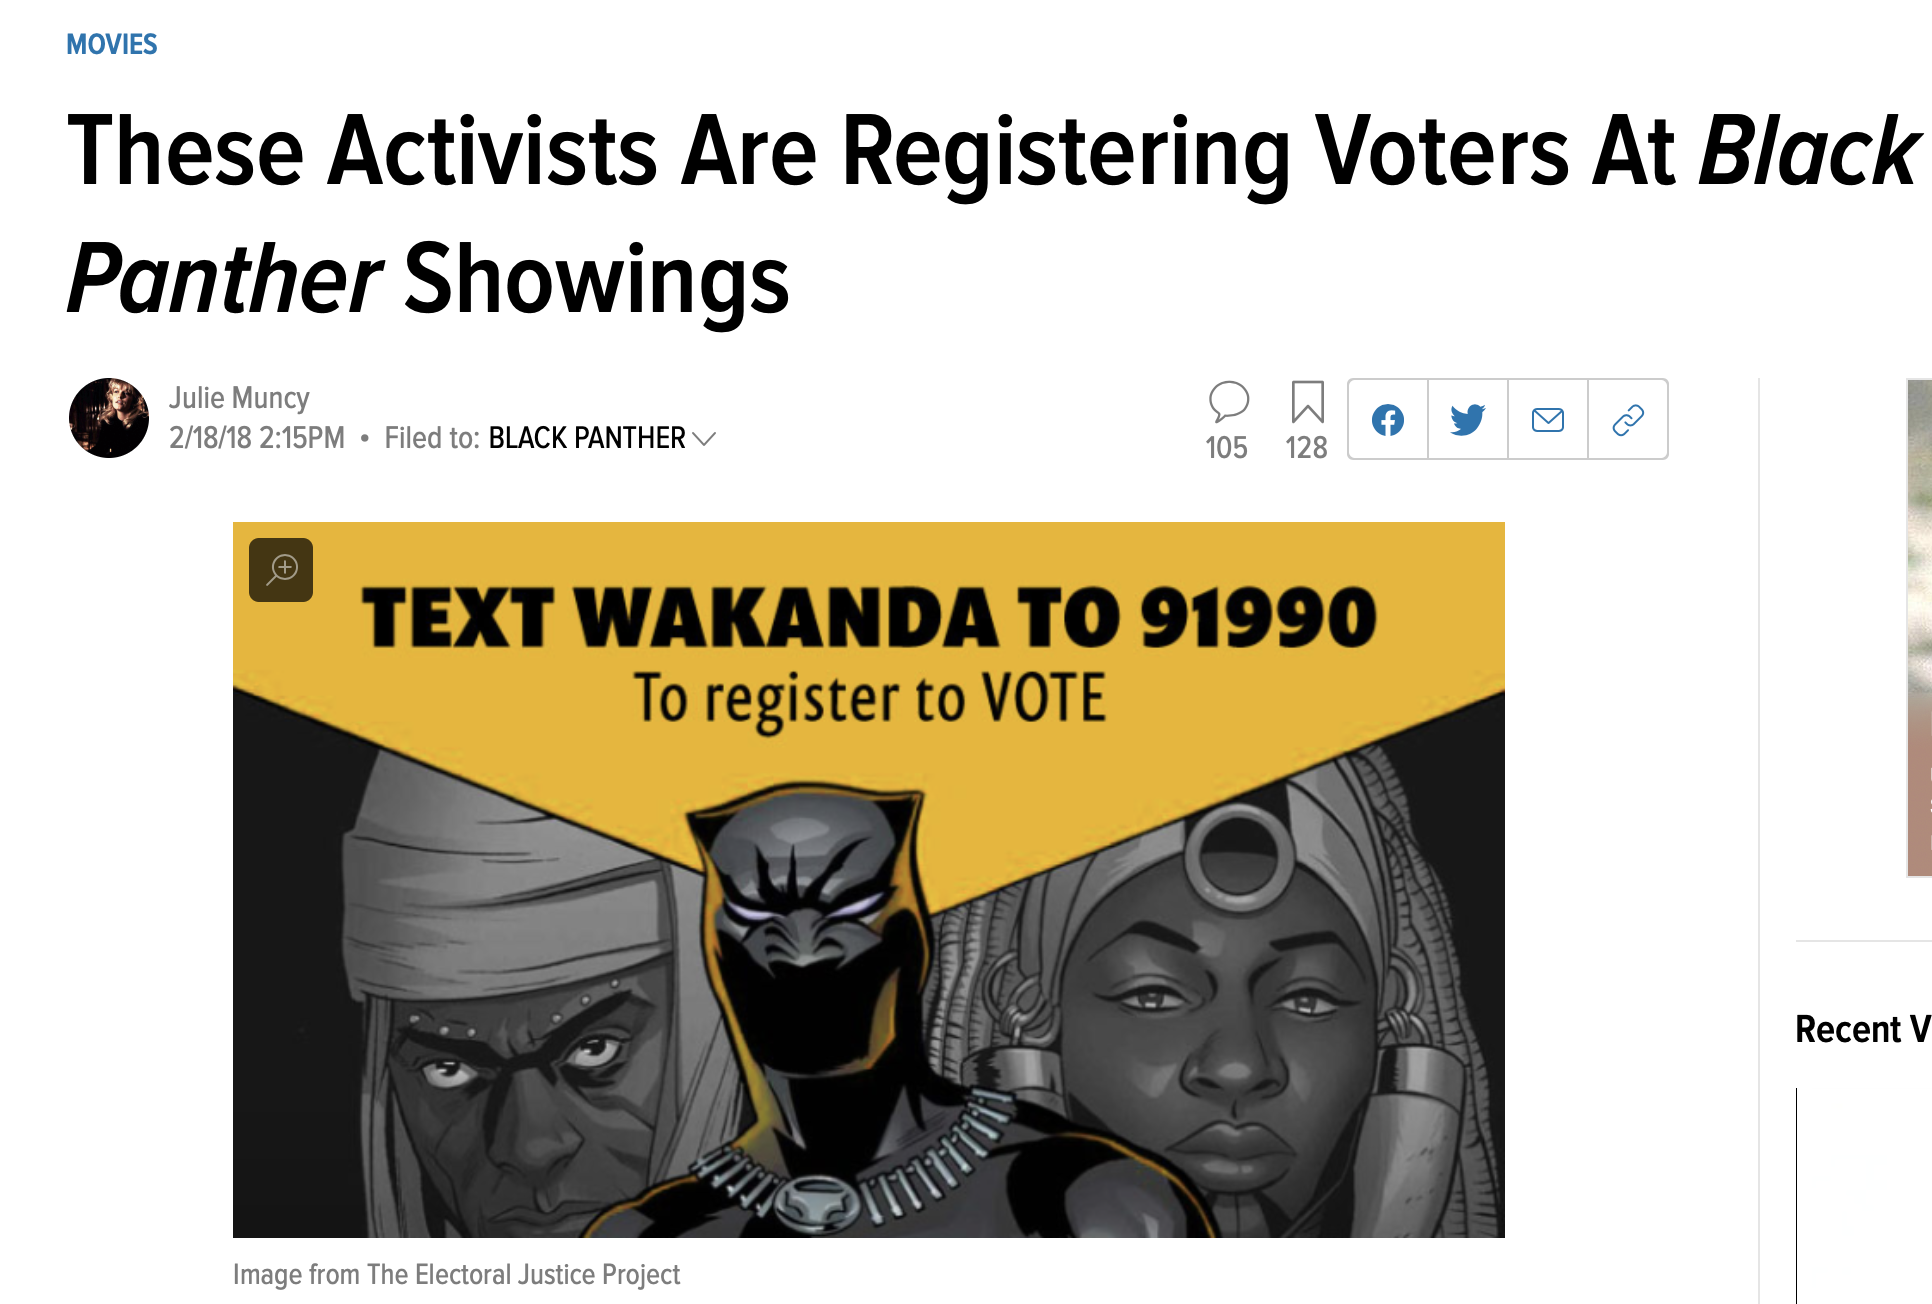 These Activists Are Registering Voters At Black Panther Showings